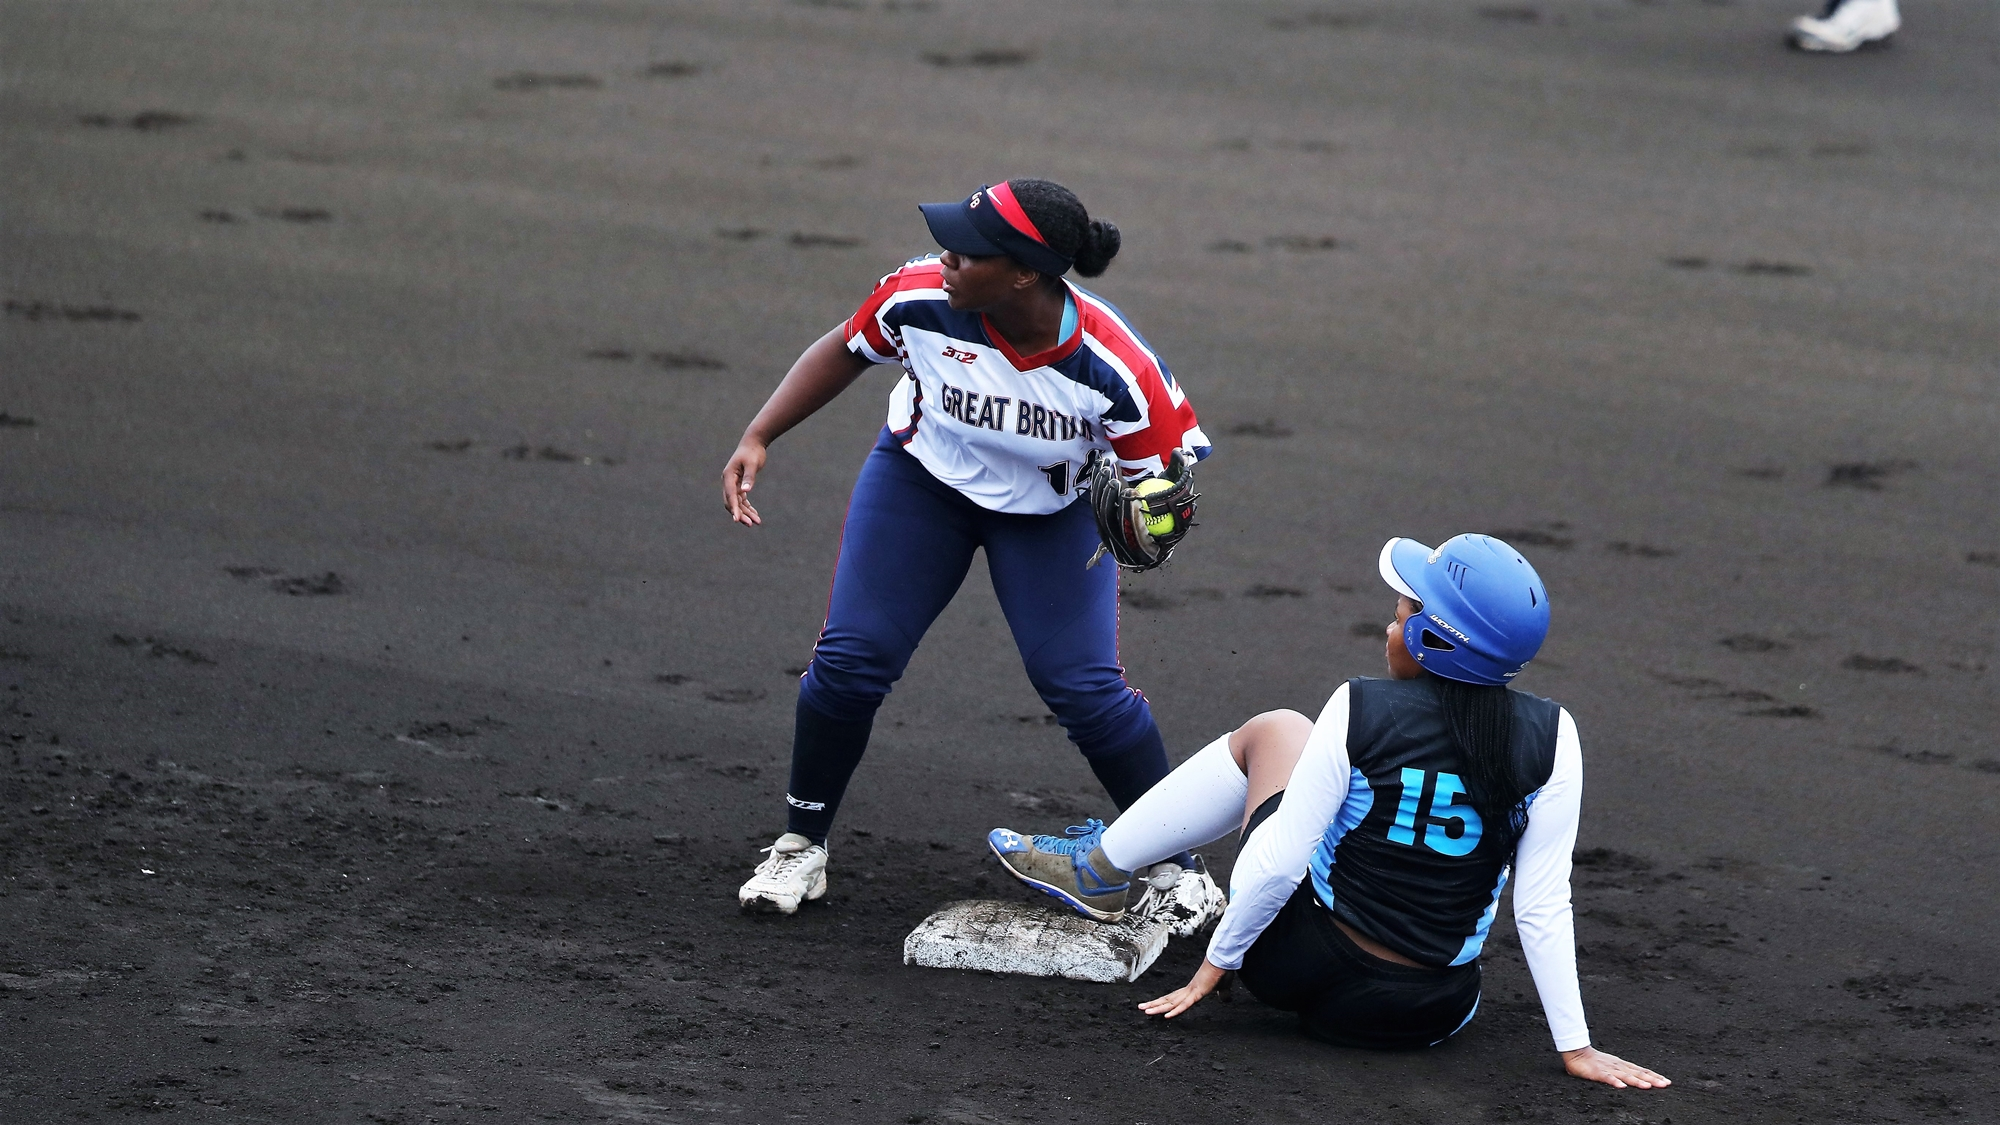 Magdeline Mabutho of Botswana tries to reach second, while Nerissa Myers of Great Britain defends